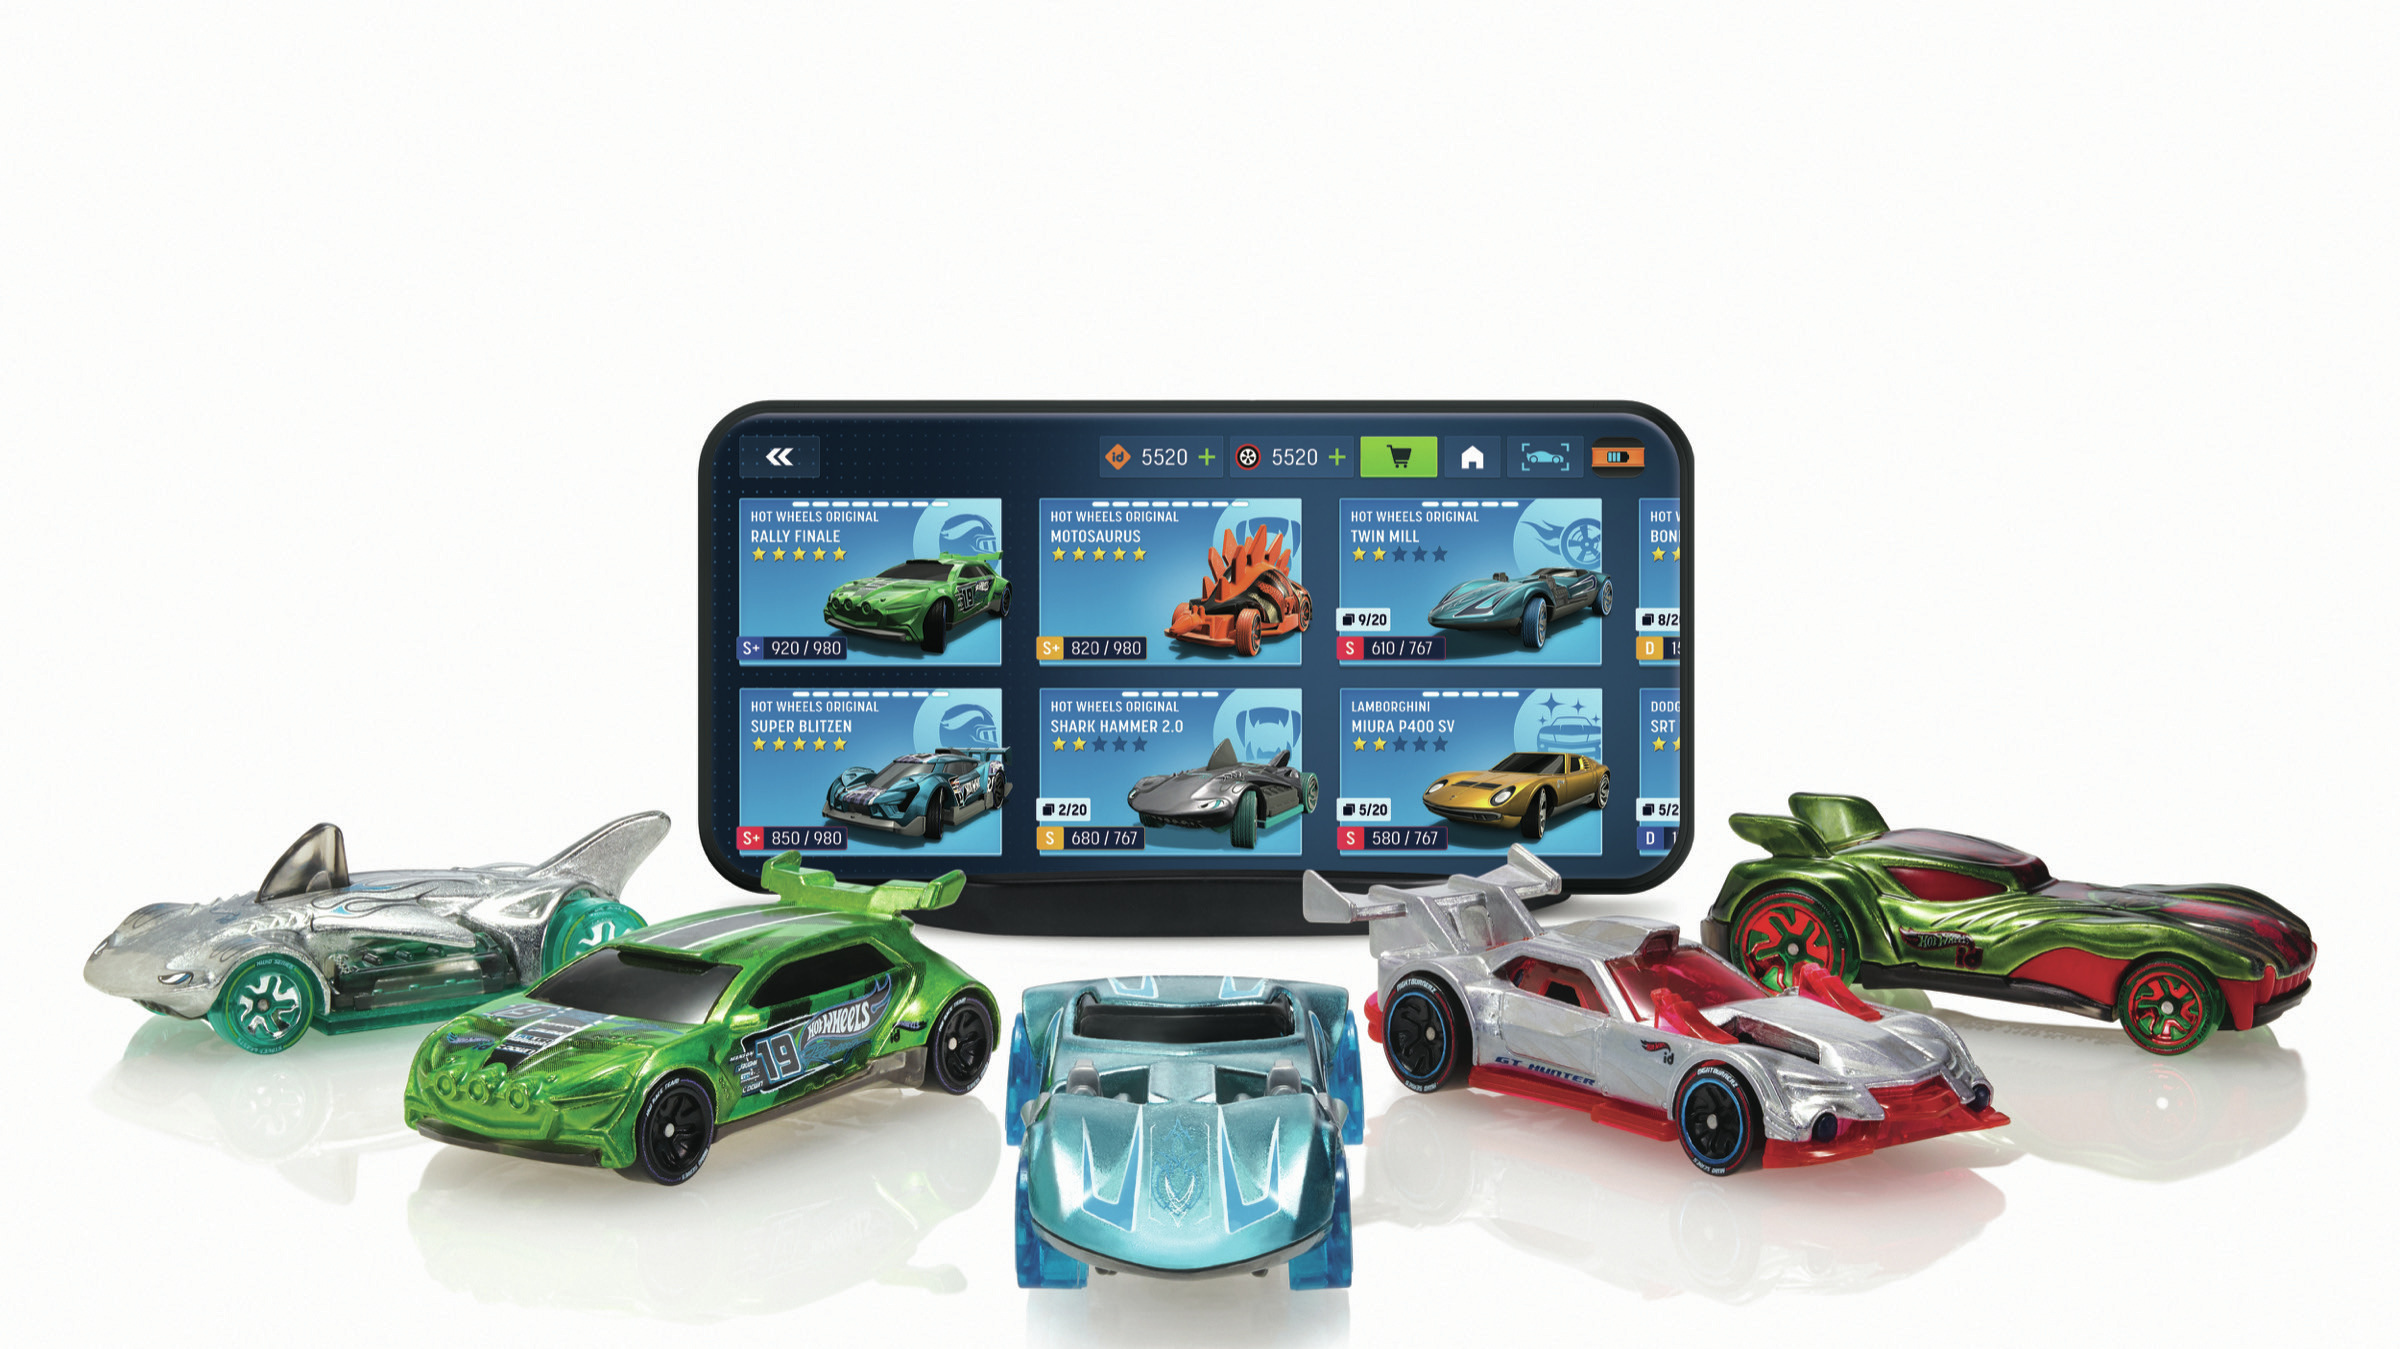 Hot Wheels' Latest Cars Can Be Raced On- And Offline